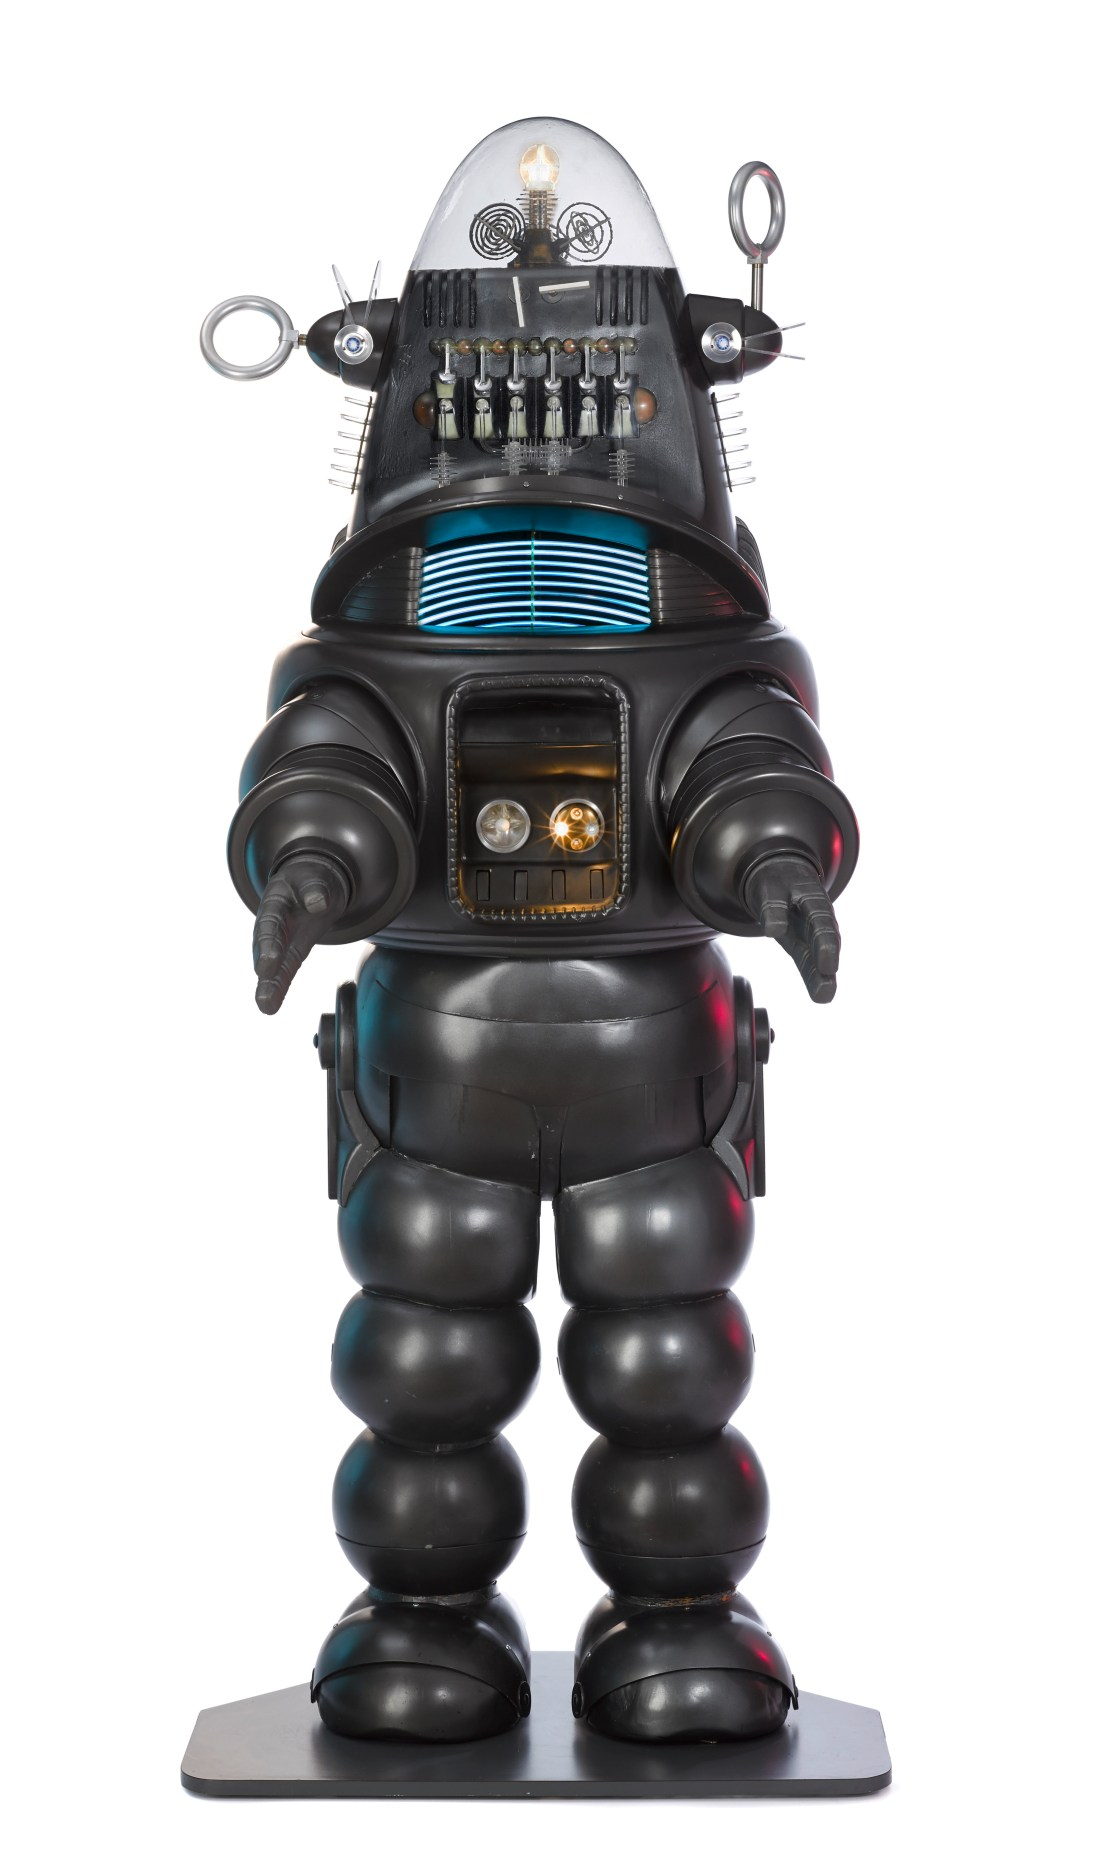 The original Robby the Robot suit, created for the 1956 MGM sci-fi film Forbidden Planet. It was offered along with a jeep used in the film. It sold in November 2017 for $5.3 million--a world auction record for a screen-used prop.